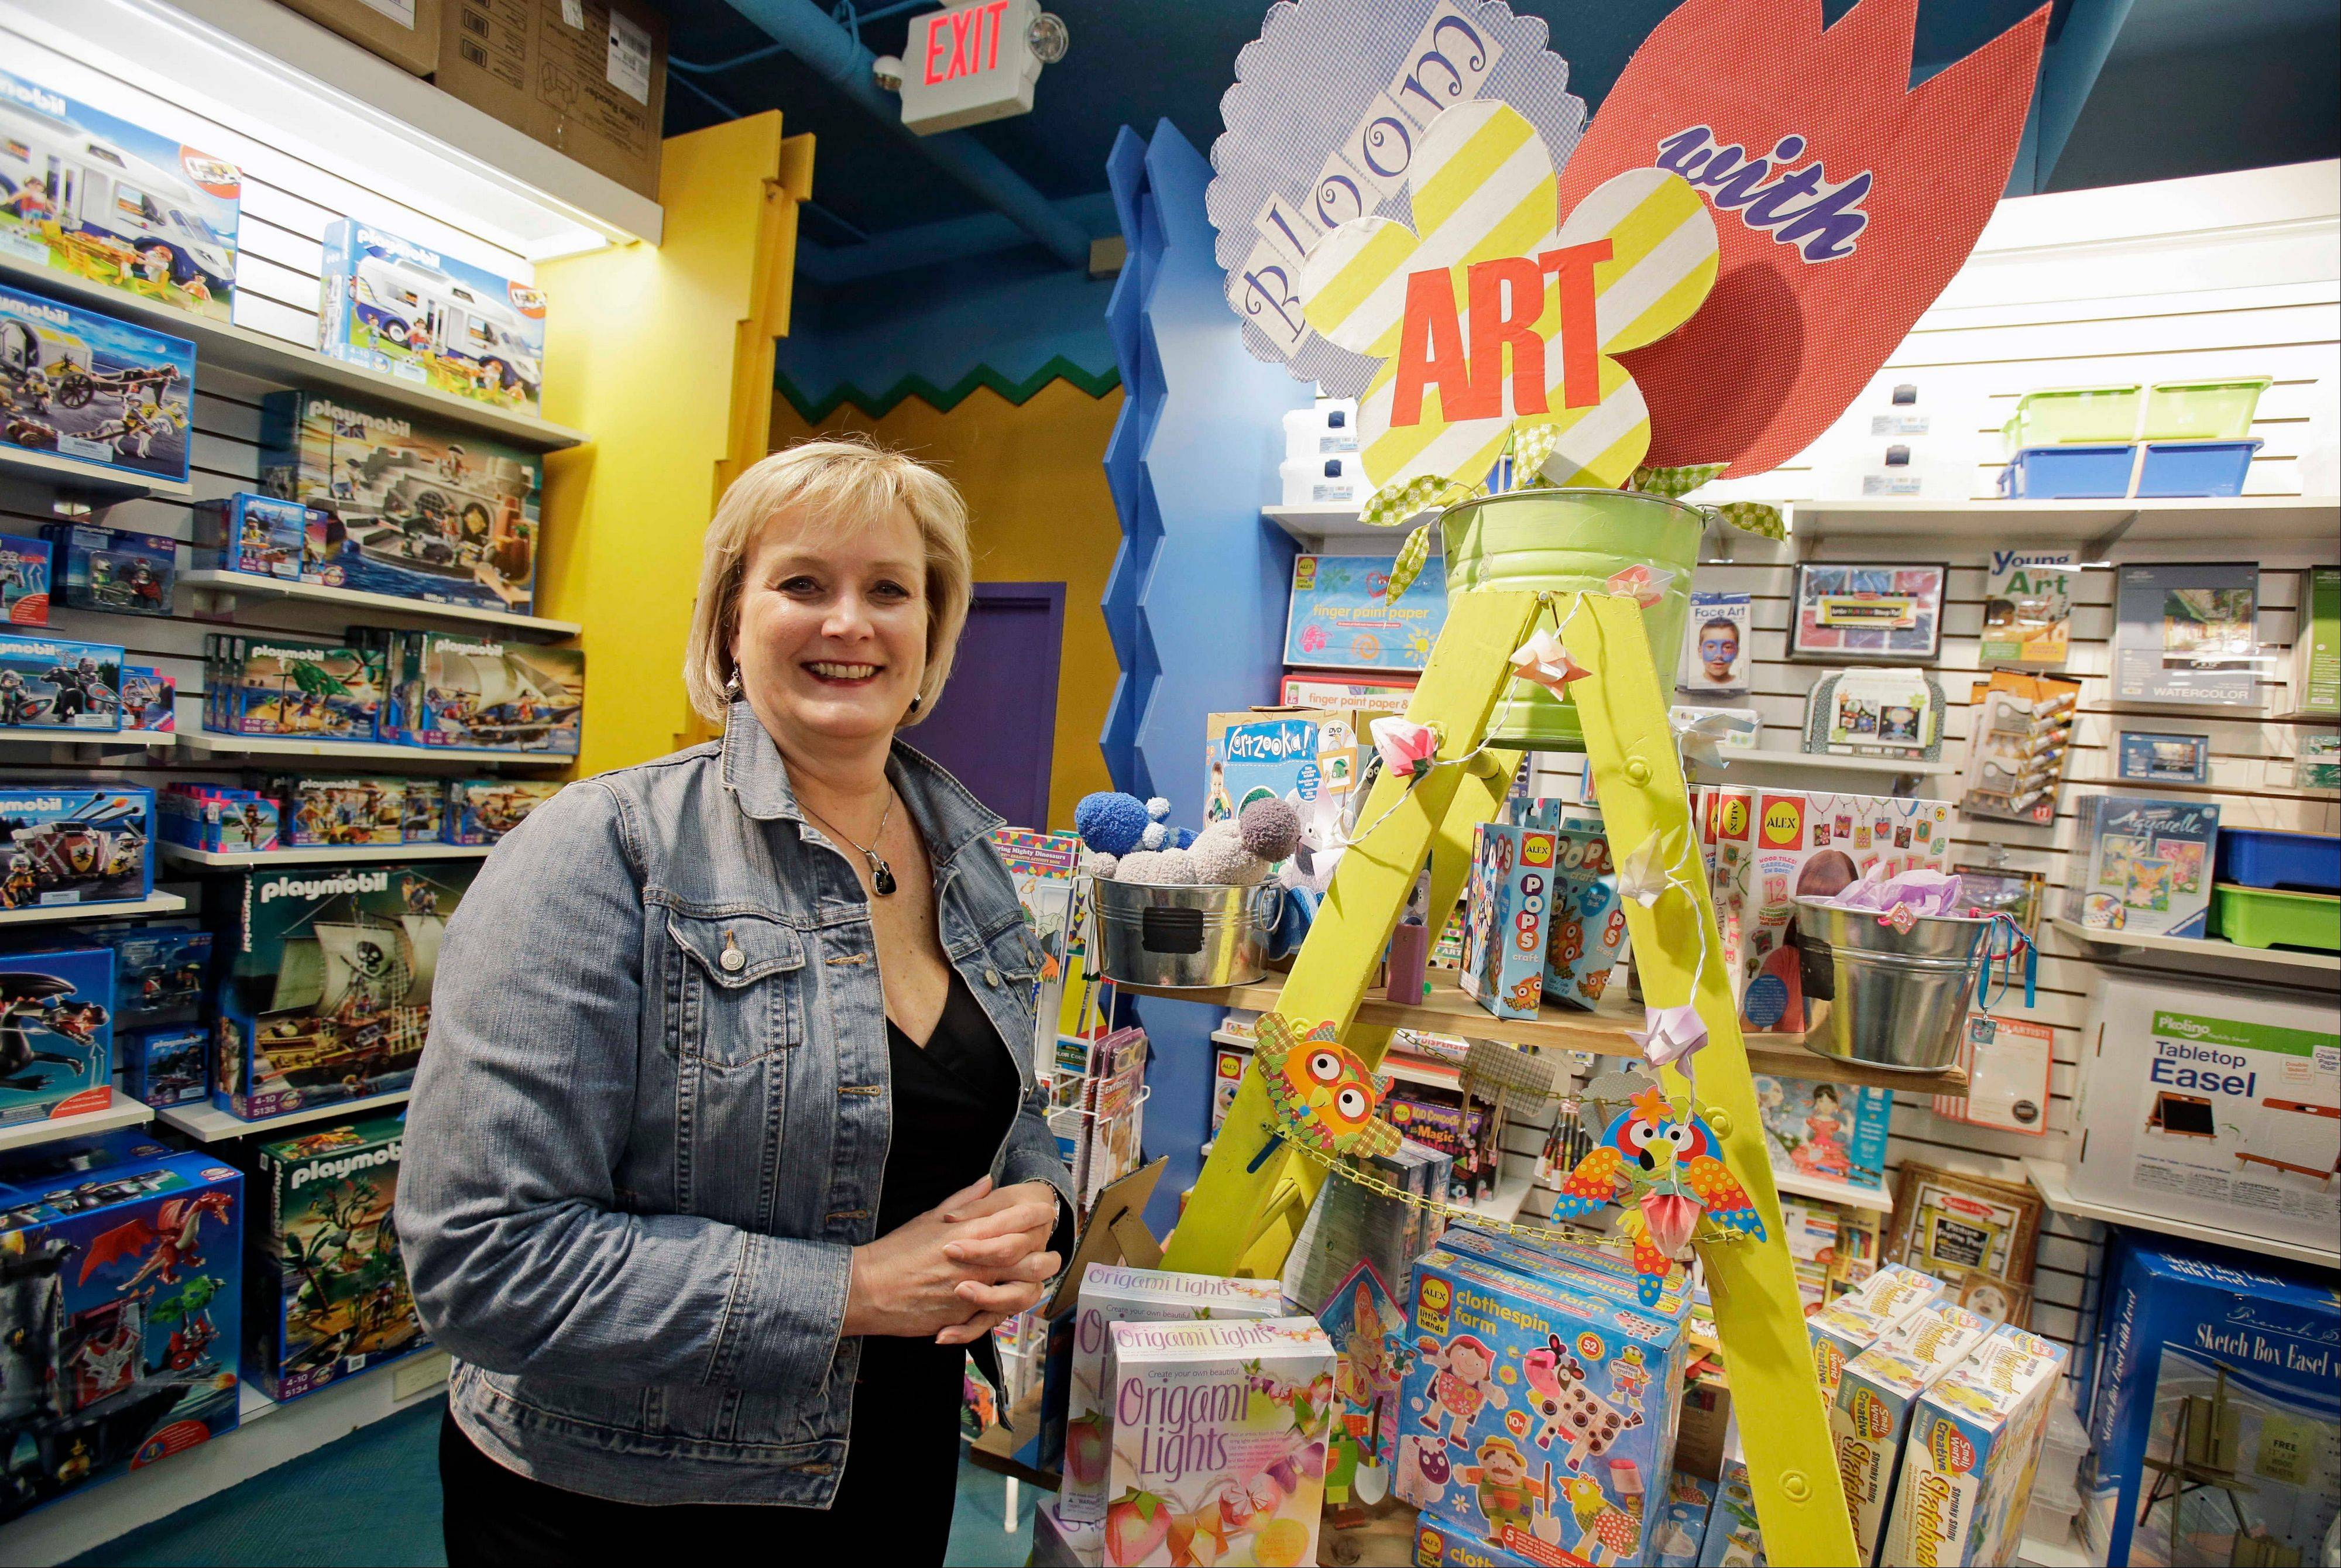 Roberta Bonoff, president and CEO of Creative Kidstuff, a toy store chain, at the store in St. Paul, Minn. The toy retailer based in Minneapolis, just expanded by buying a 26-year-old online and catalog toy retailer, Sensational Beginnings. Bonoff said the owner was tired and ready to sell.